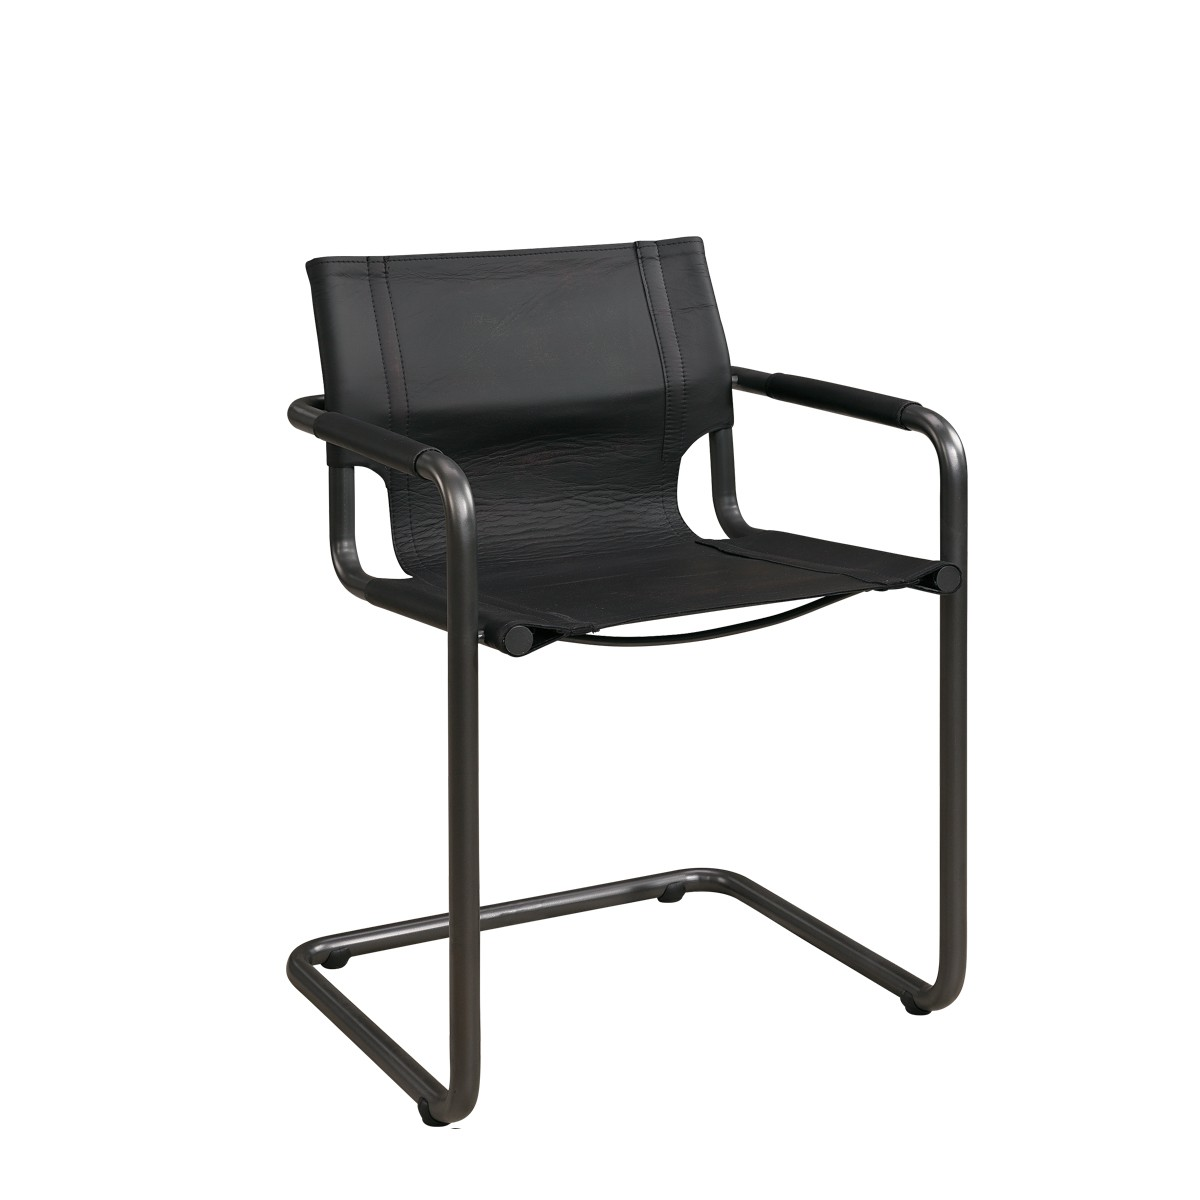 GIANNI Armchair natural iron/matt black taupe leather